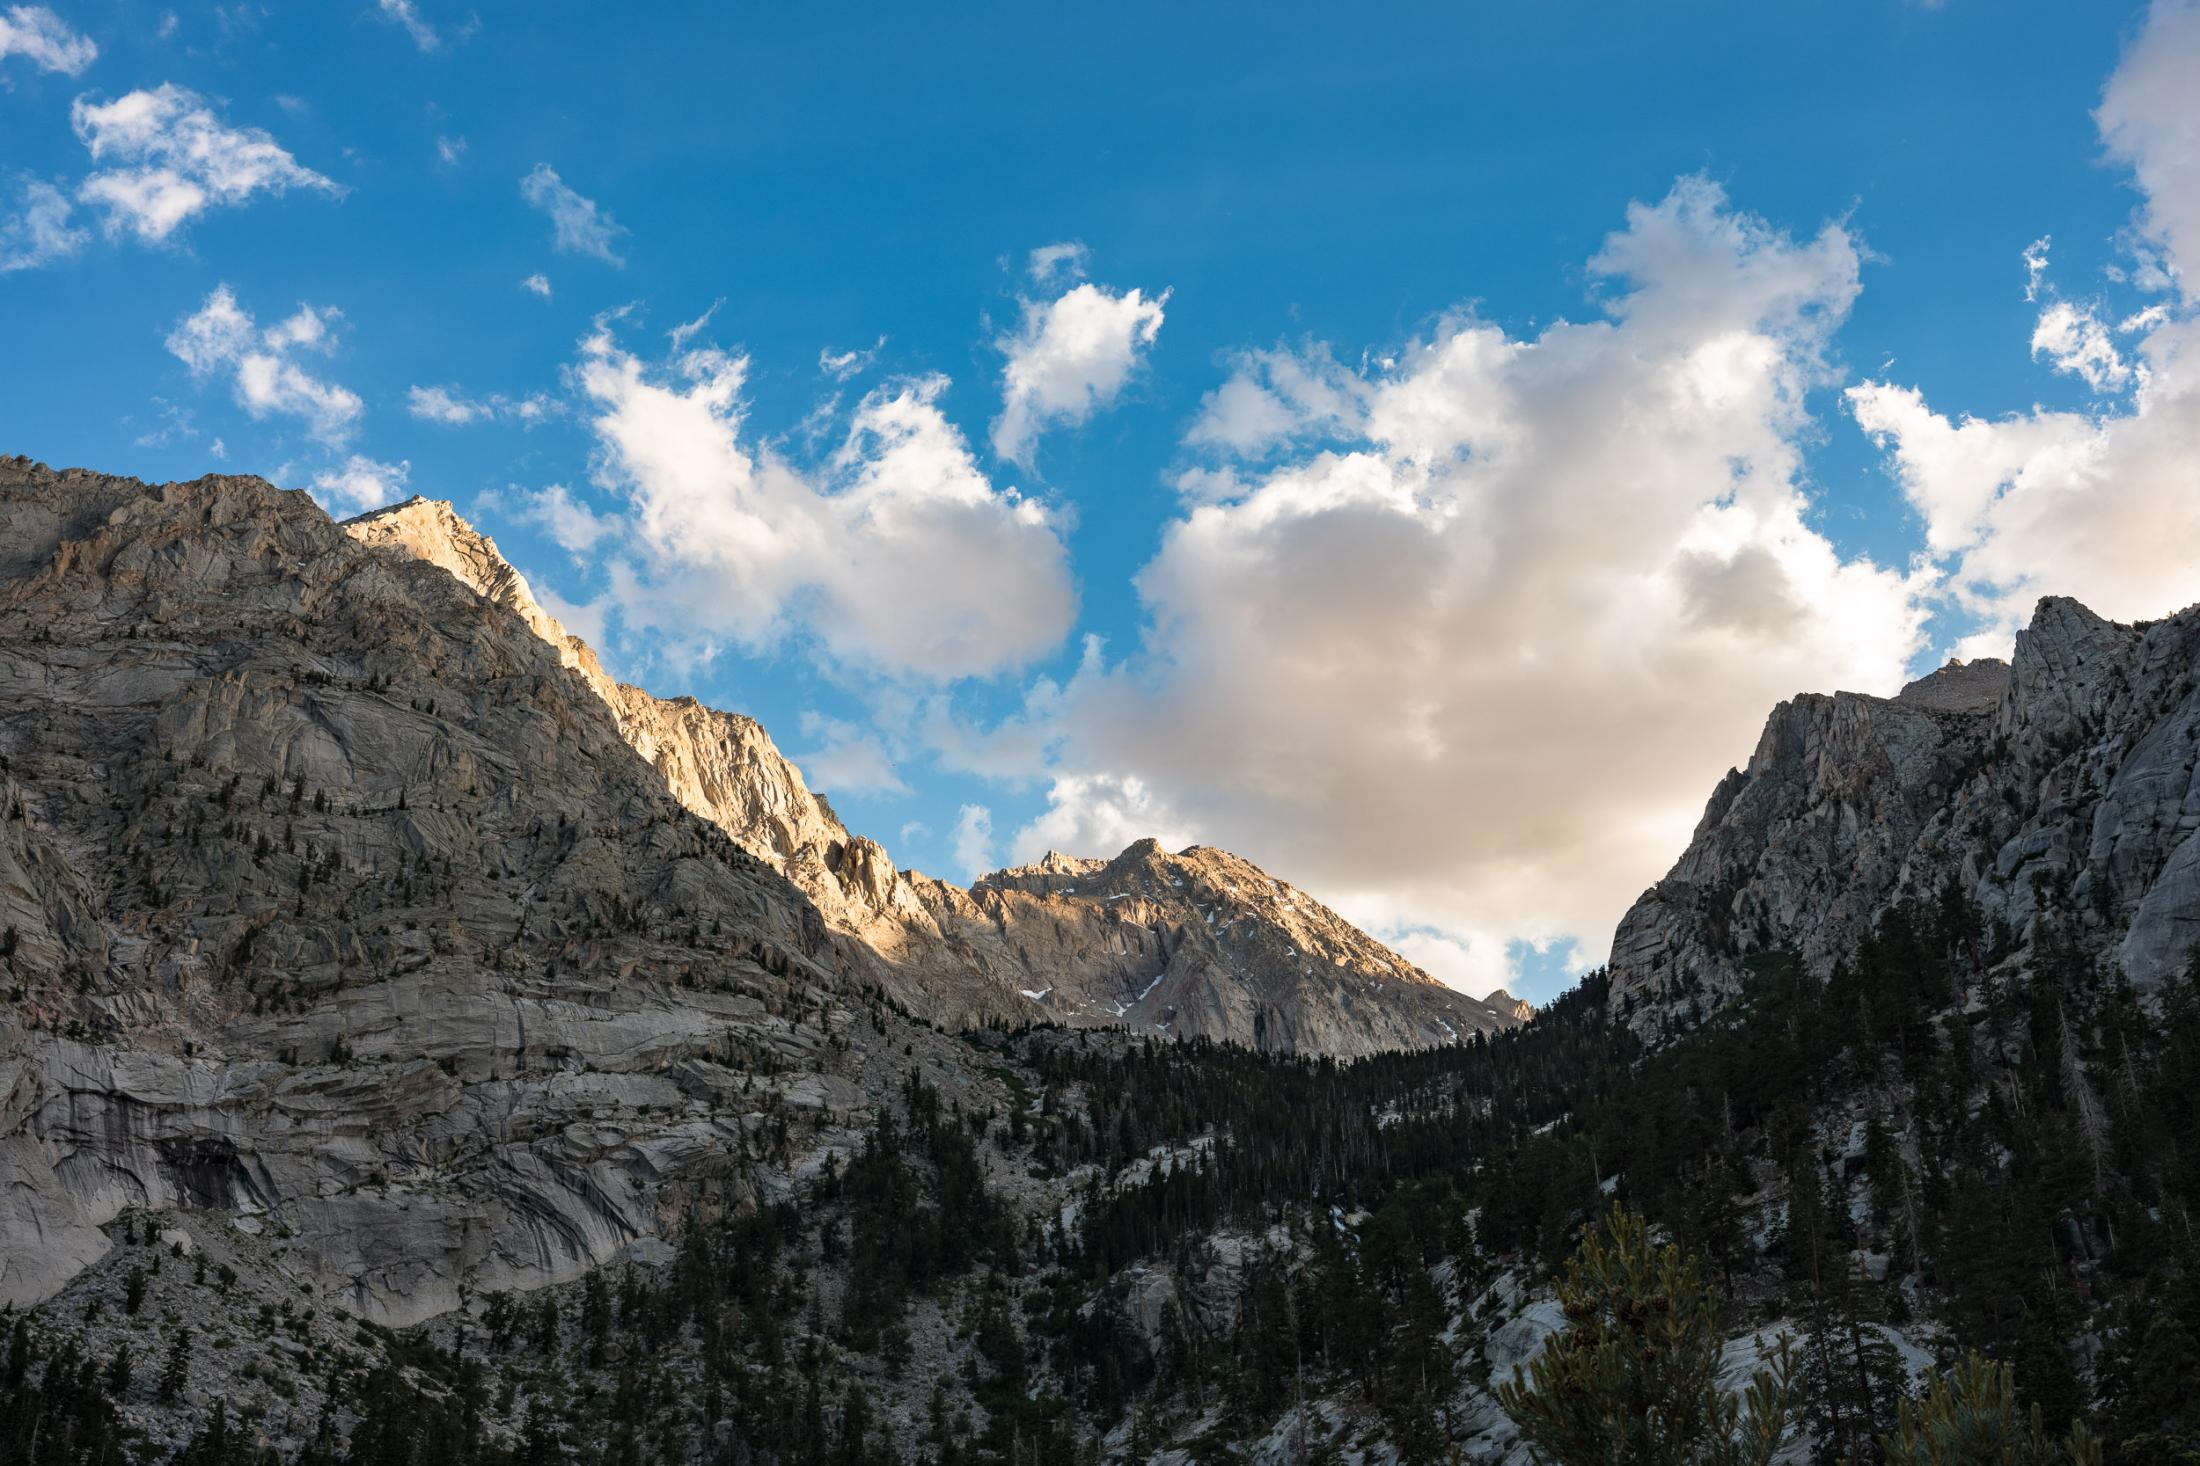 5.The Tioga pass, Yosmite. July 2018